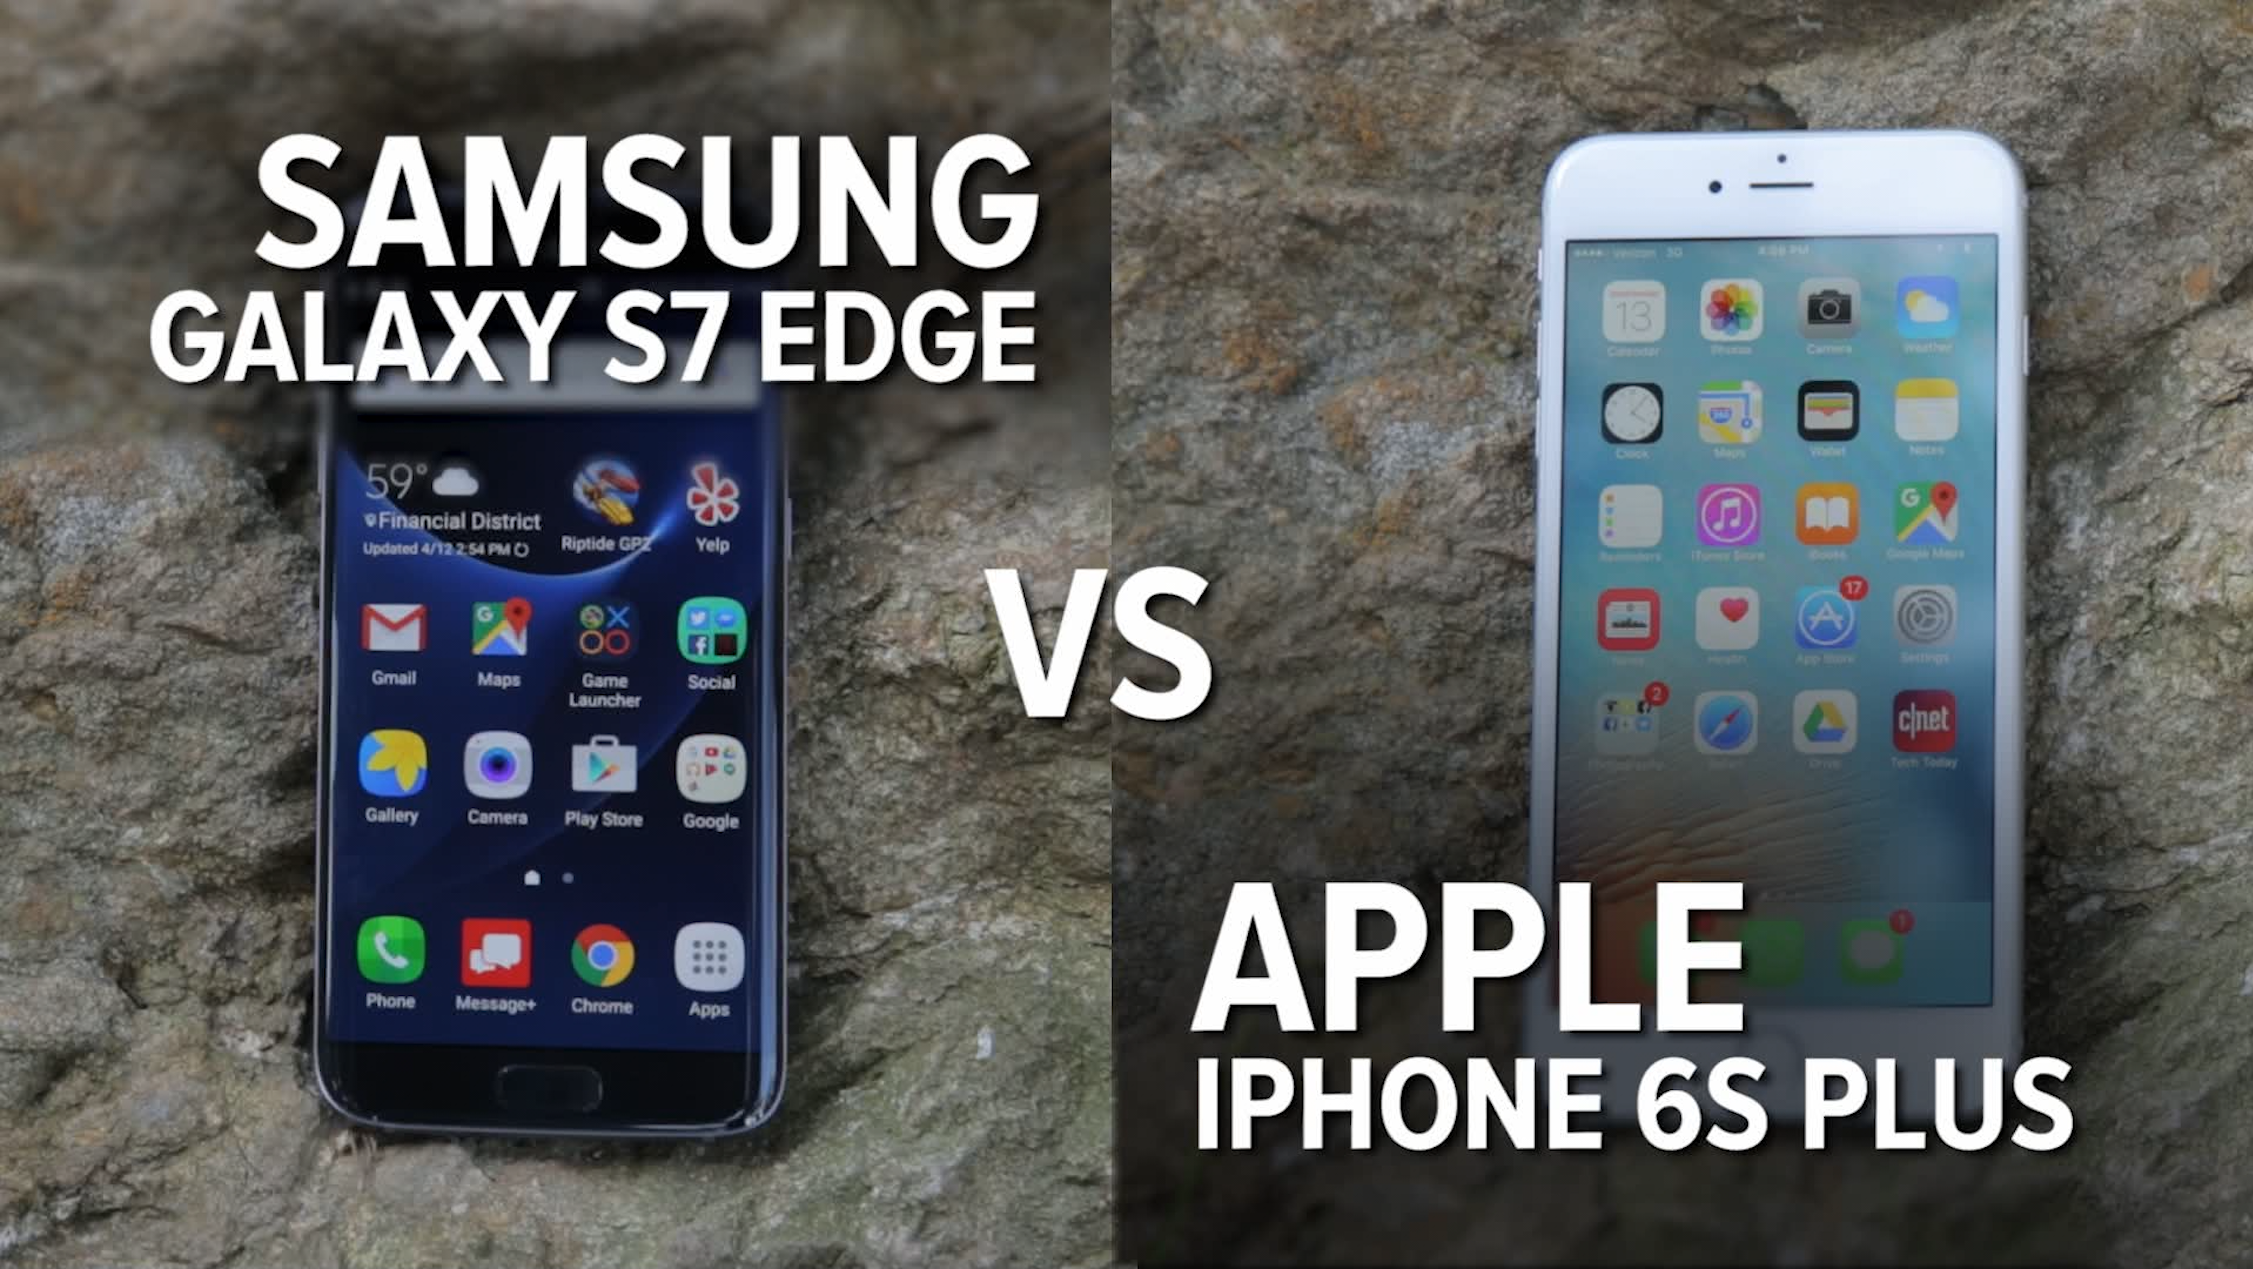 Video: Camera comparison: The Galaxy S7 Edge vs. the iPhone 6S Plus